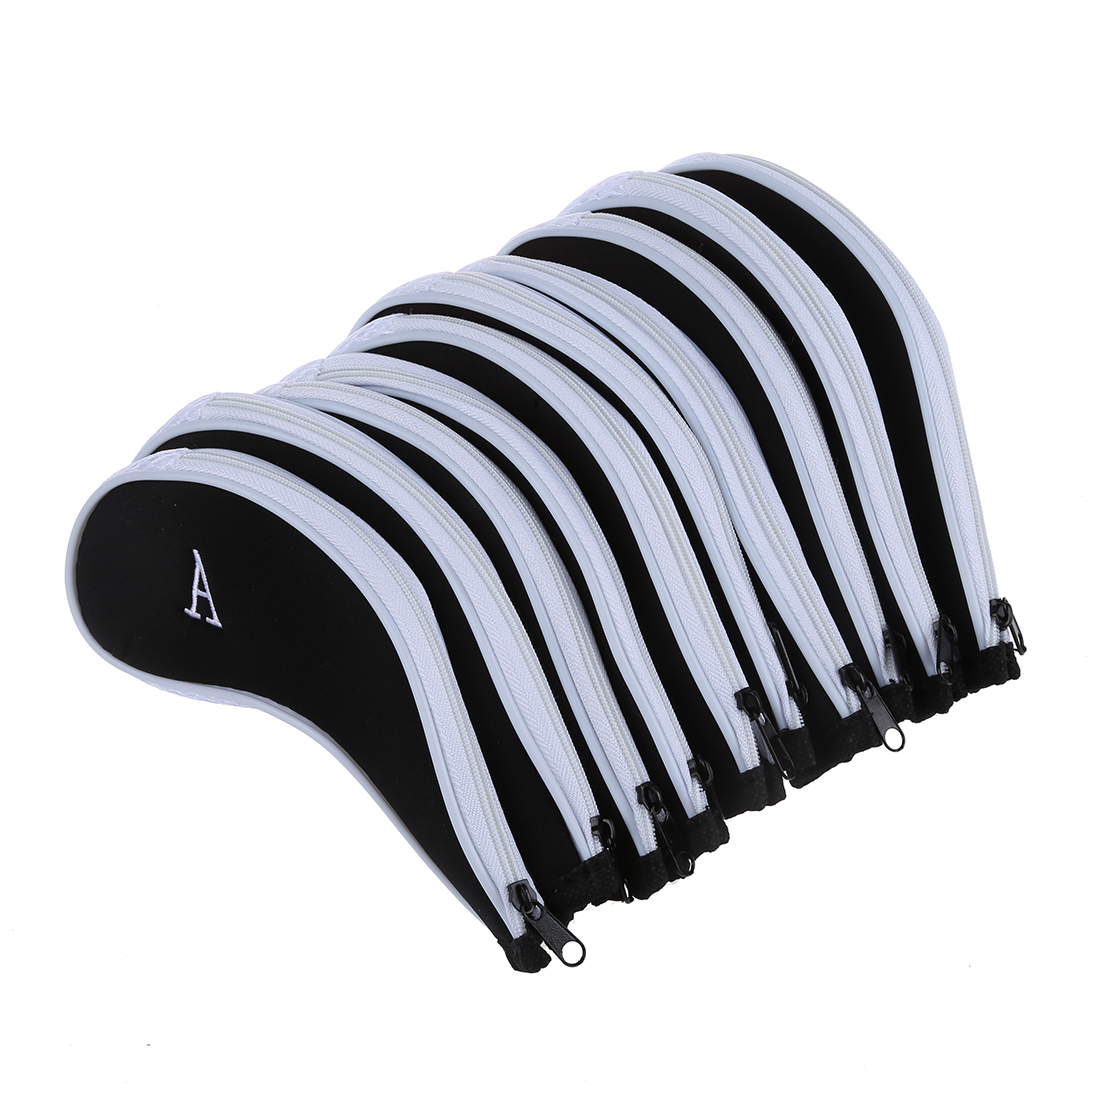 10 pcs Golf Club Iron Putter Head Cover HeadCovers Protect Set Fit for All Brands and Si ...